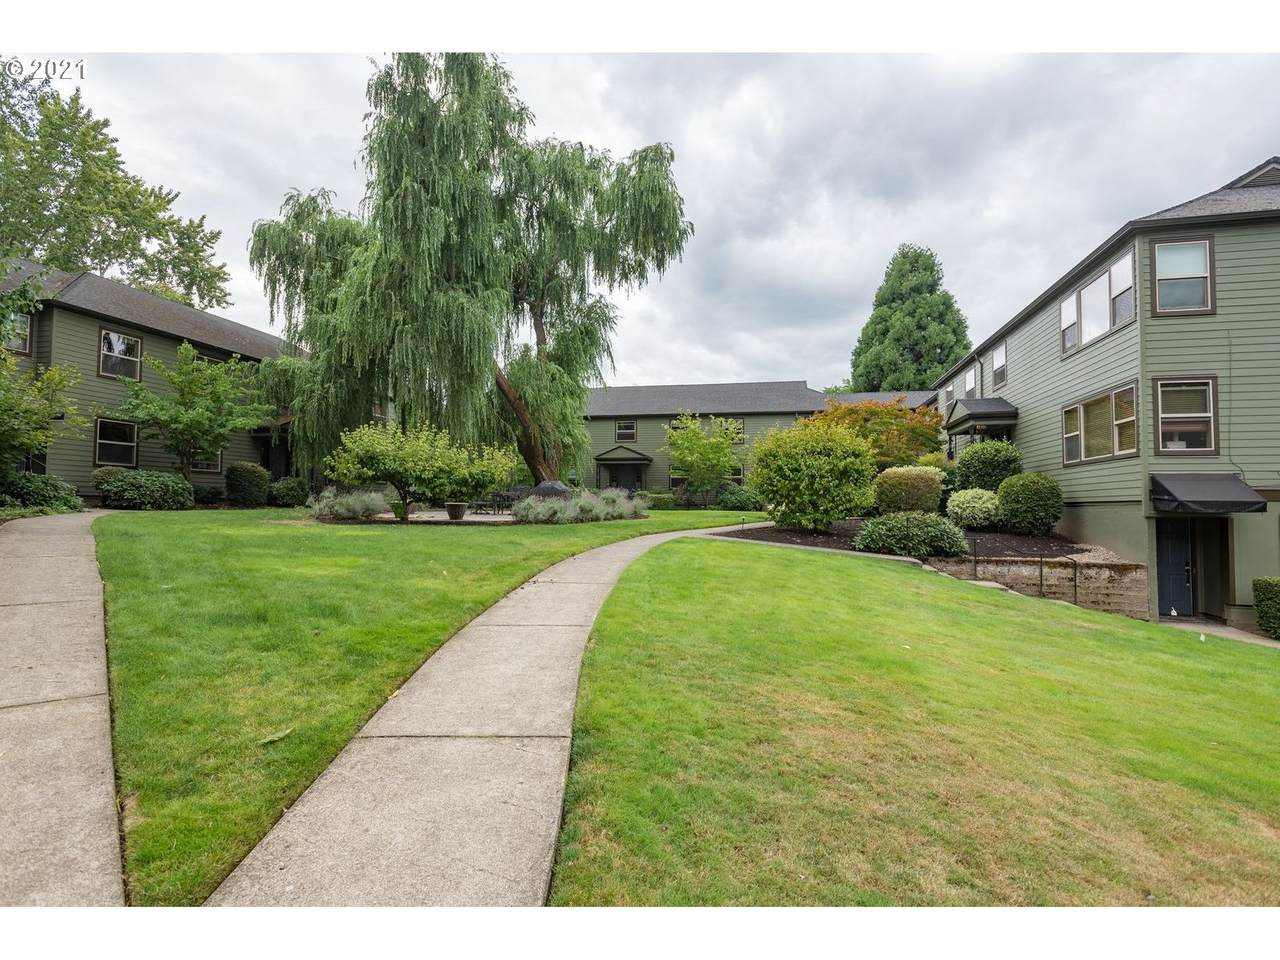 3707 42ND Ave - Photo 1